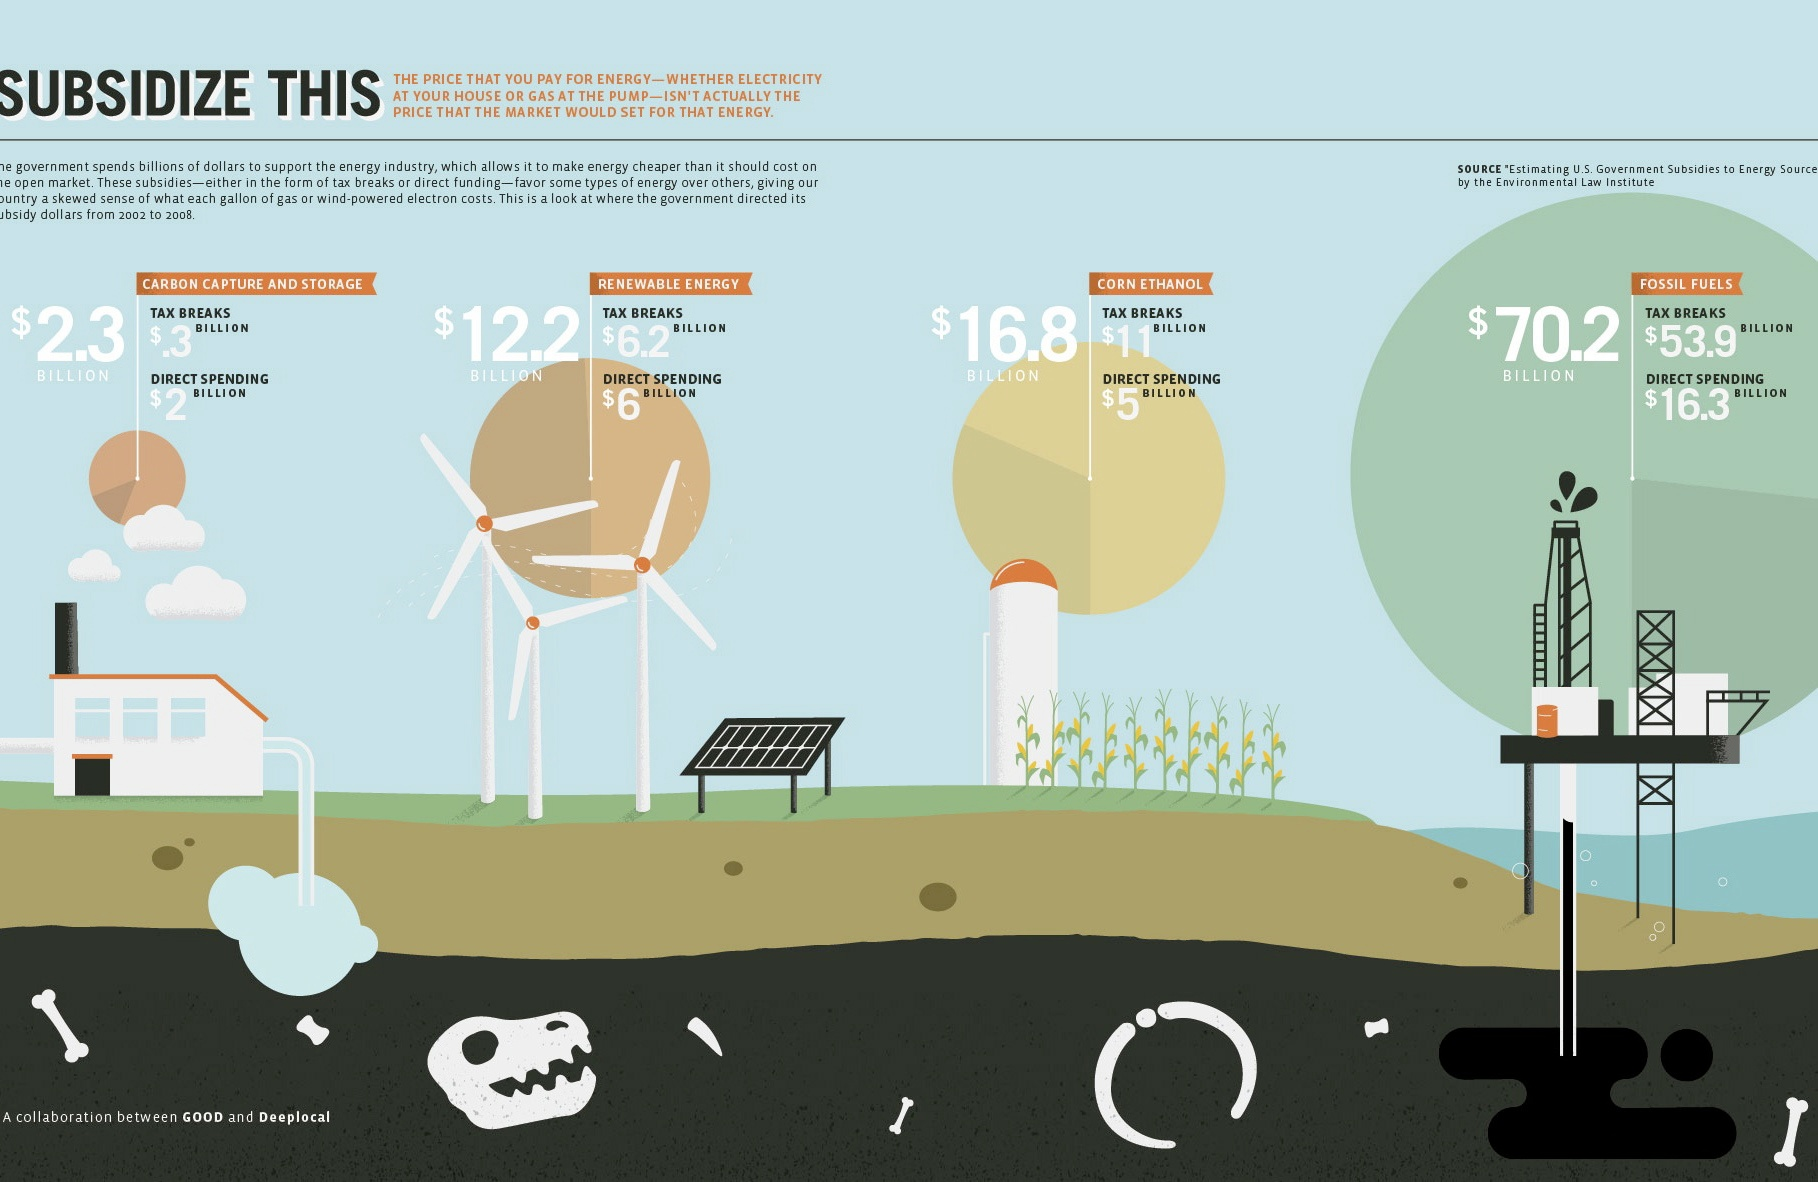 Infographic Clearly Shows How Little Government Support Clean Energy's Received Compared to Fossil Fuels